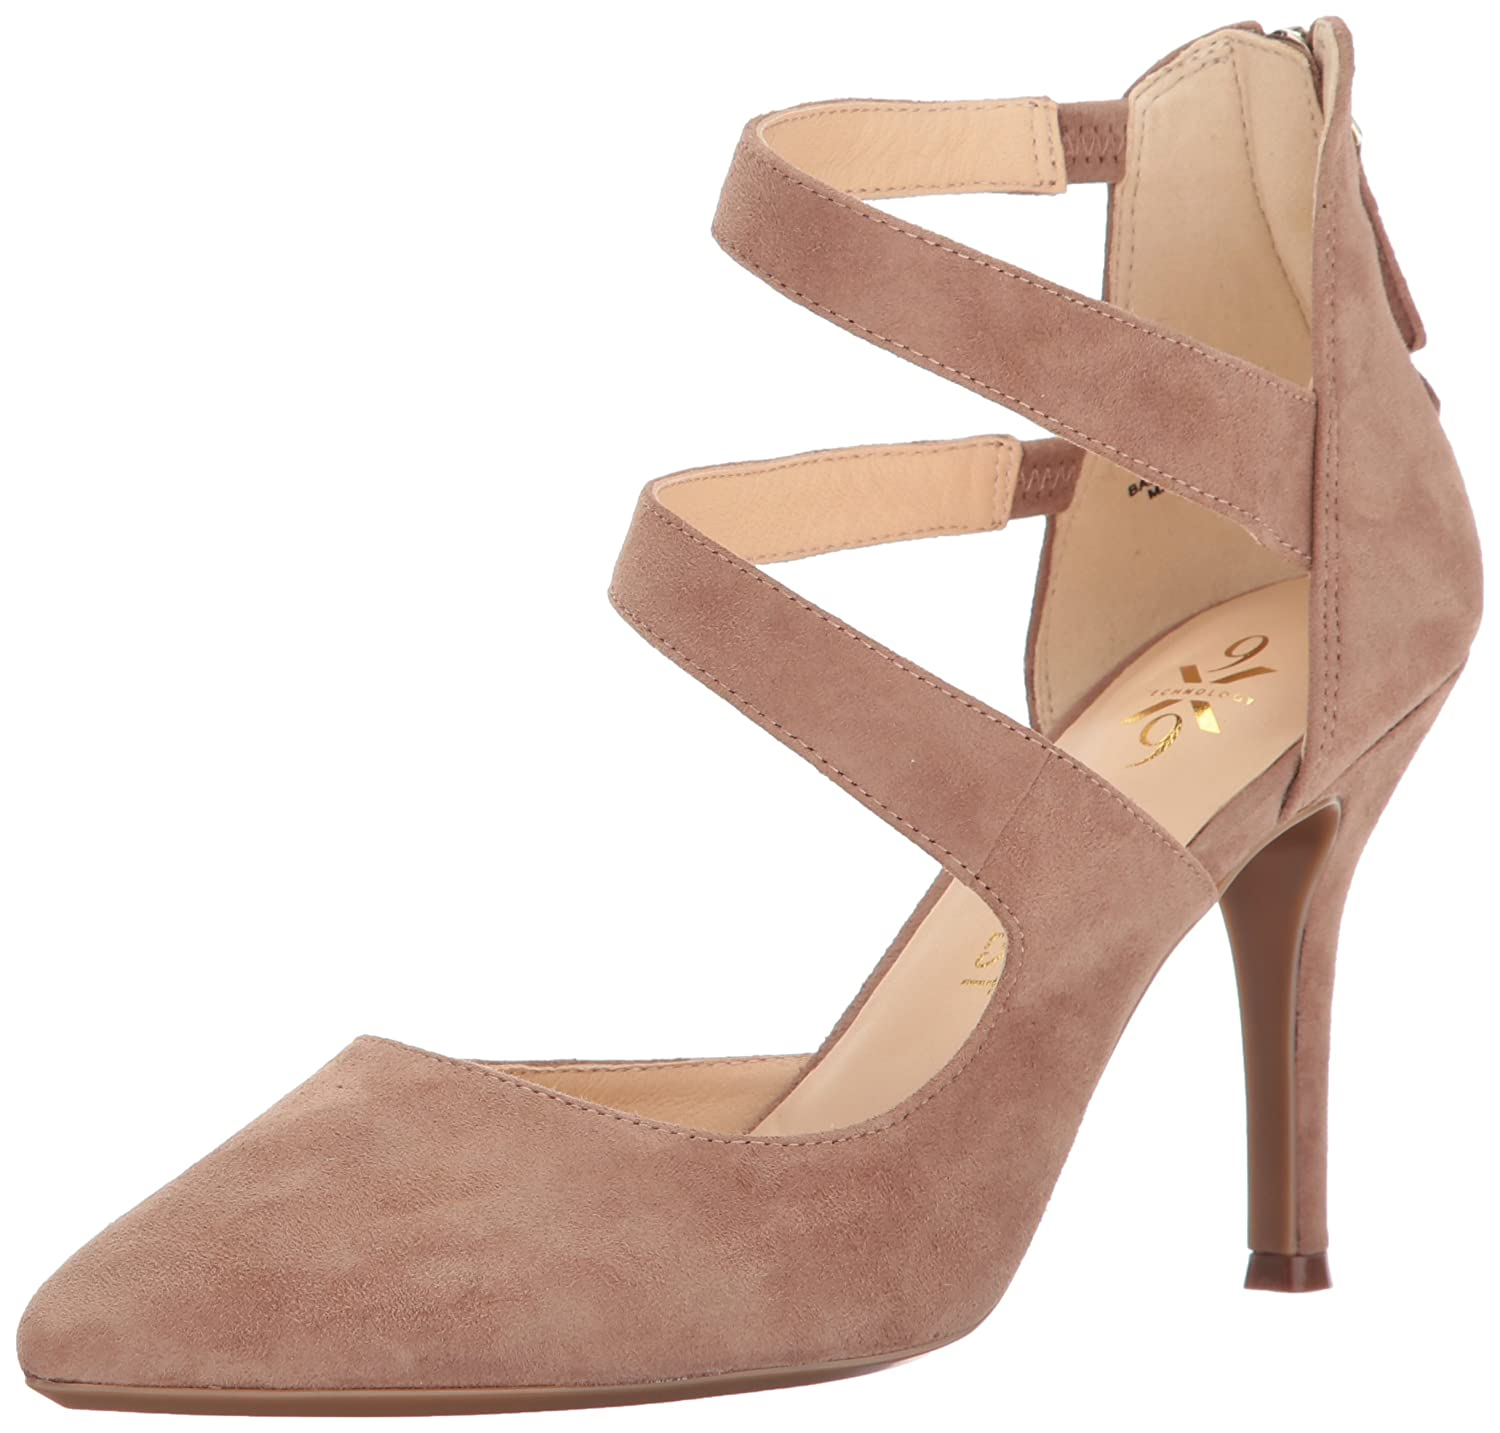 Nine West Women's Florent Pump B01MRSIRP0 7 B(M) US|Natural Suede